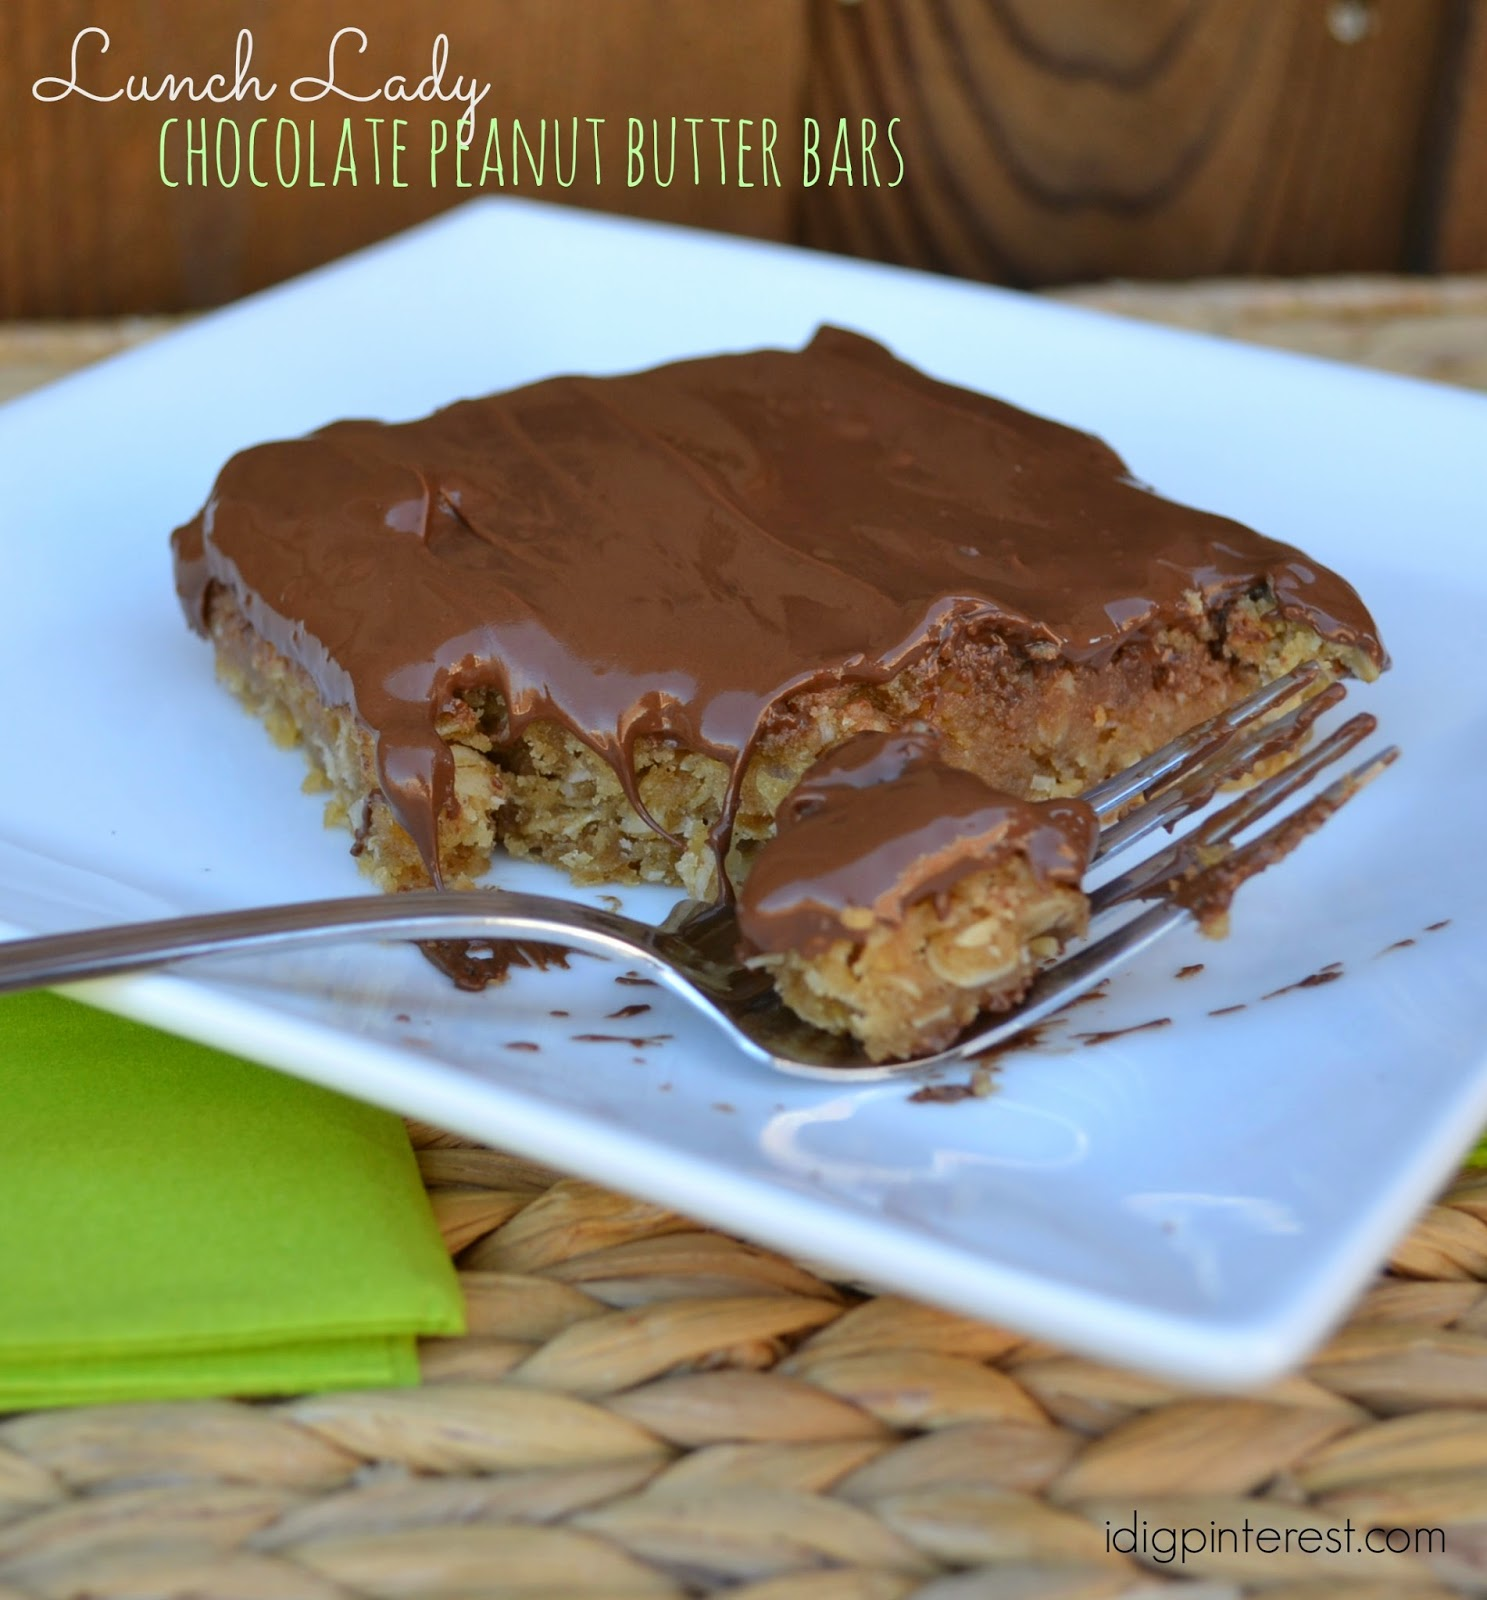 lunch lady chocolate peanut butter bars i dig lunch lady chocolate peanut butter bars